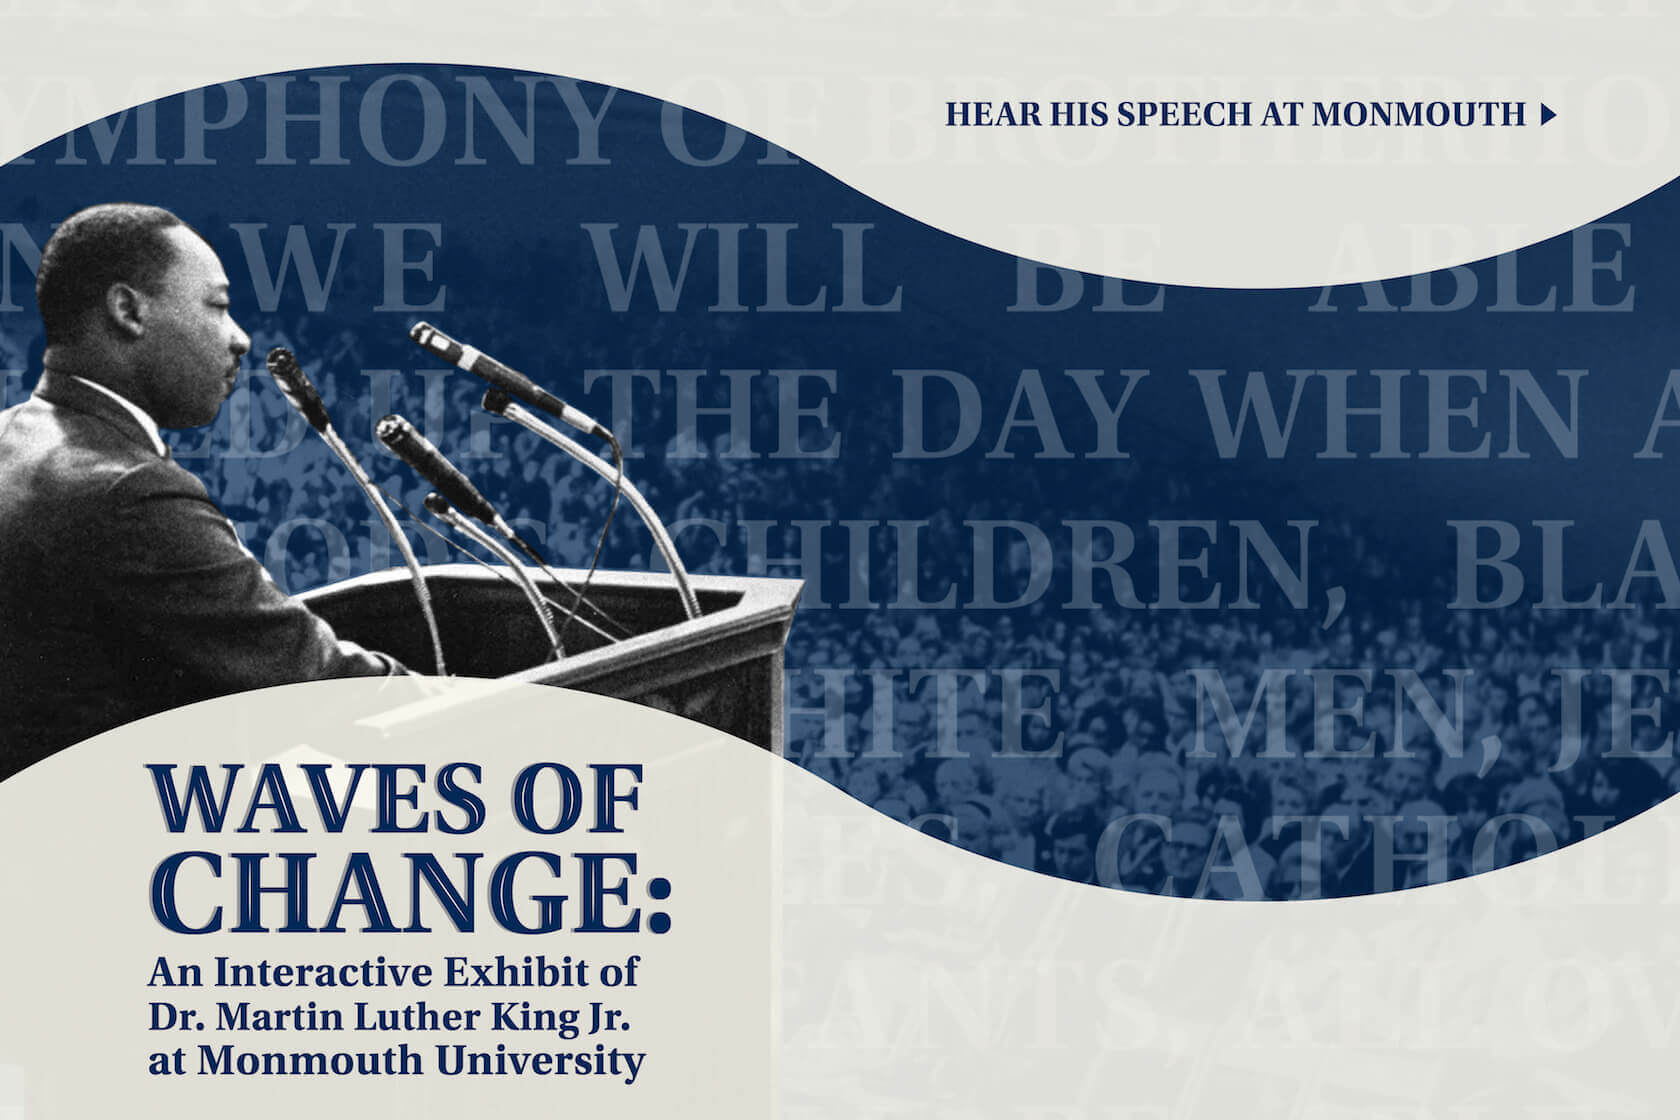 Listen to the speech Dr. Martin Luther King Jr. delivered at Monmouth University.. Waves of Change: An Interactive Exhibit.